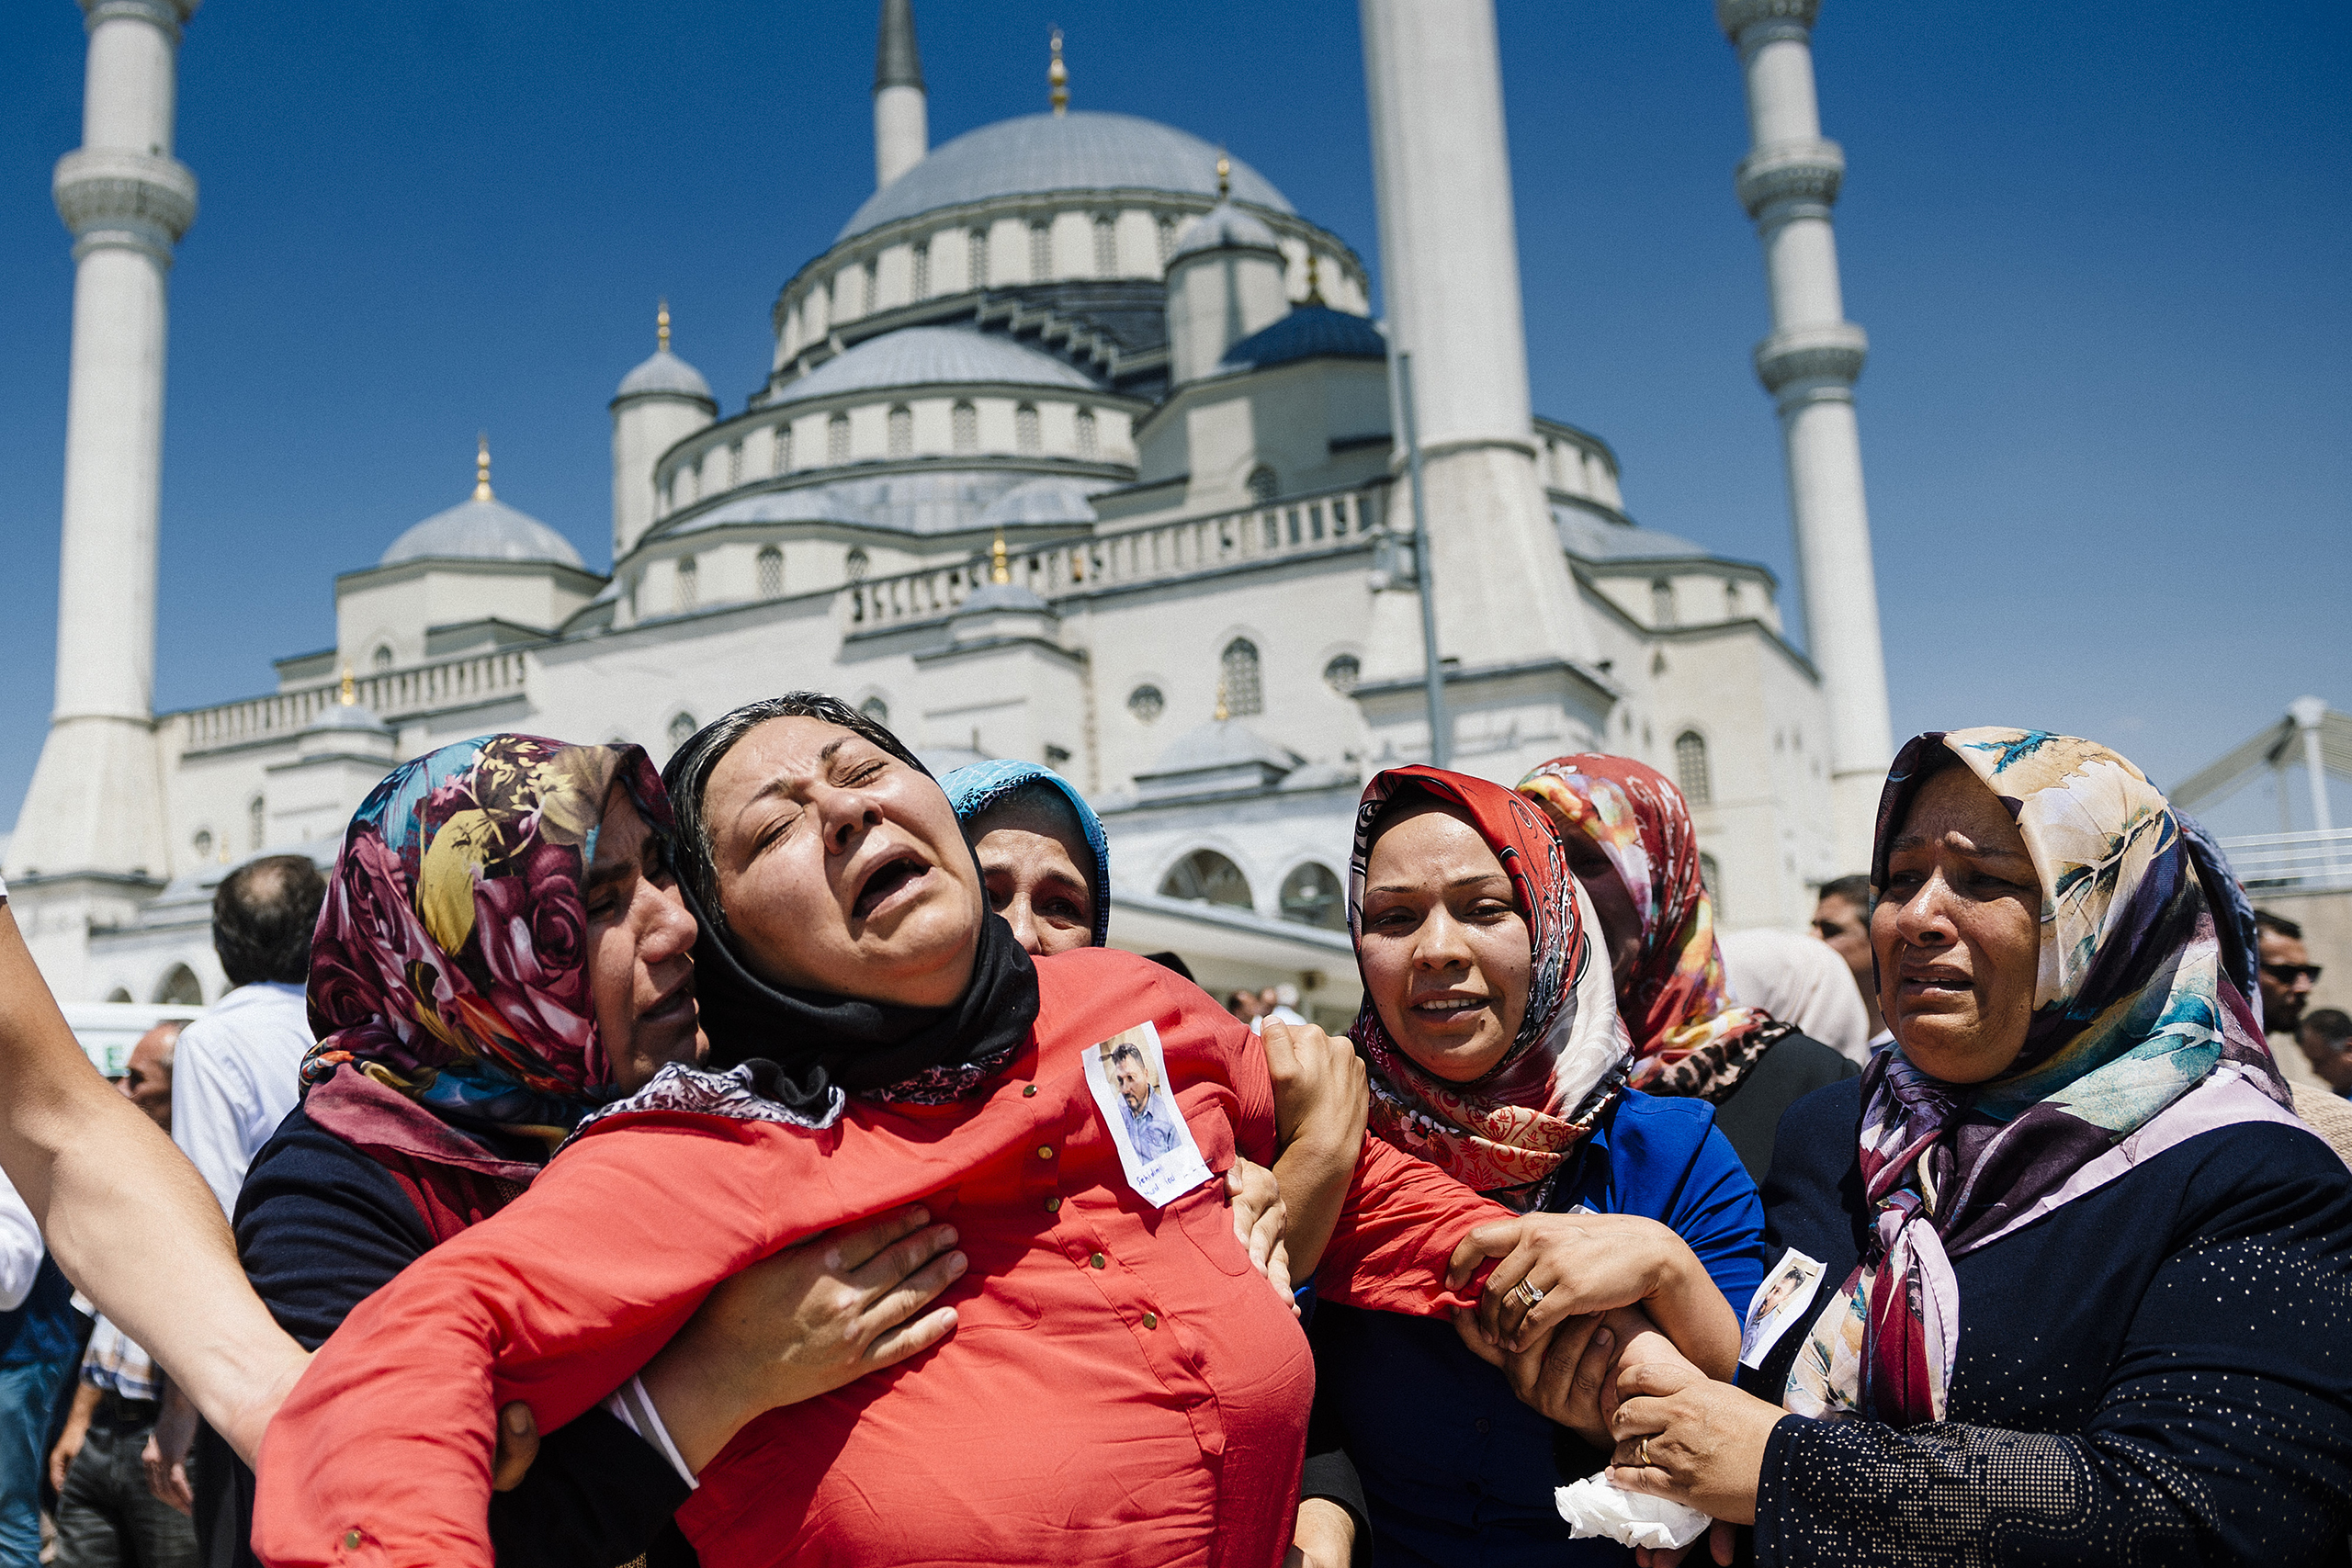 Women react during the funeral ceremony of Sehidmiz Murat Inci, a victim of the coup attempt, at Kocatepe Mosque in Ankara, Turkey, on July 18, 2016.